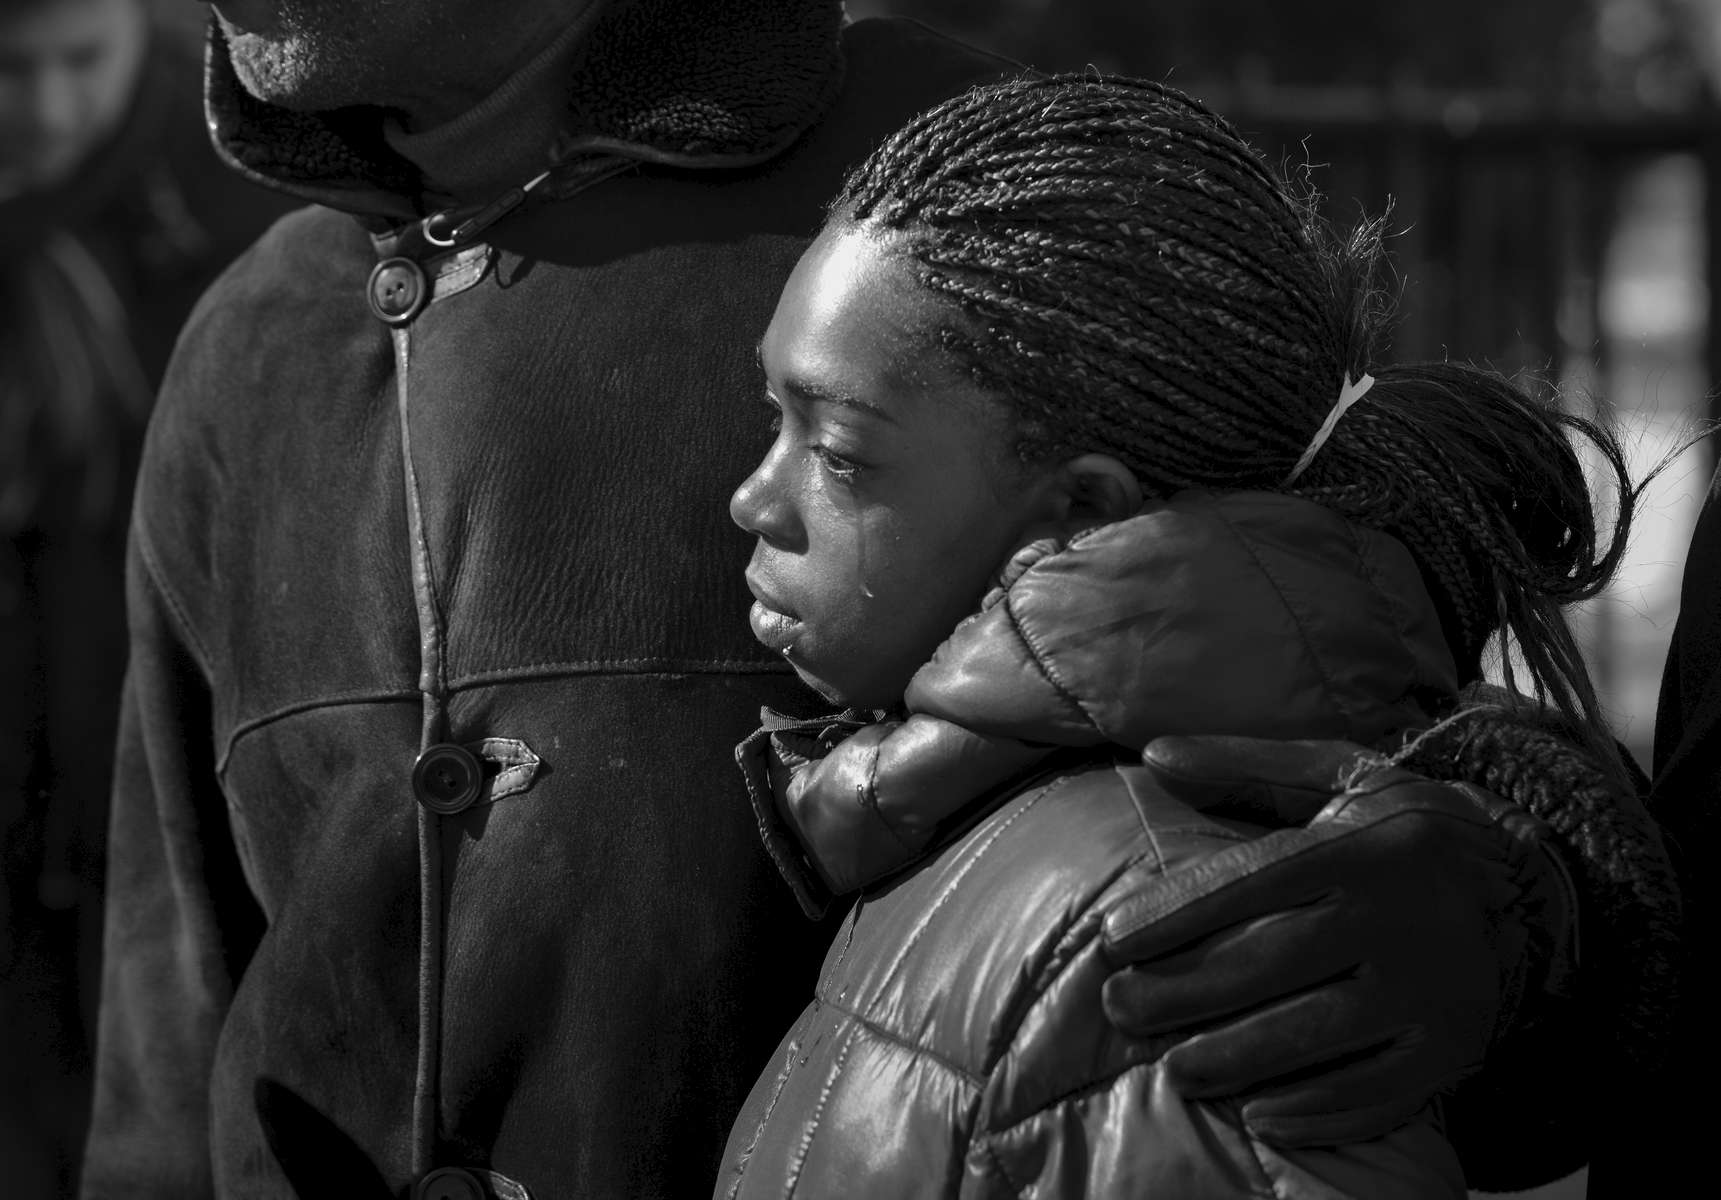 Tears flow on the cheeks of Melissa Butler, friend of Akai Gurley who was shot and killed by NYPD police officer Peter Liang at Louis Pink Houses. Melissa Butler, who was with Akai Gurley when he was shot and killed in the stairwell, was joined by her mother Naomi Butler, 69, daughter Janya Washington, 8, New York State Assembly Charles Barron, and her Attorney Rodger Wareham as they hold a news conference in response of the indictment of NYPD Officer Peter Liang at Louis Pink Houses located at 2632 Linden Boulevard in Brooklyn on Wednesday, February 11, 2015. Officer Liang is indicted and will face criminal charges for the fatal shooting.